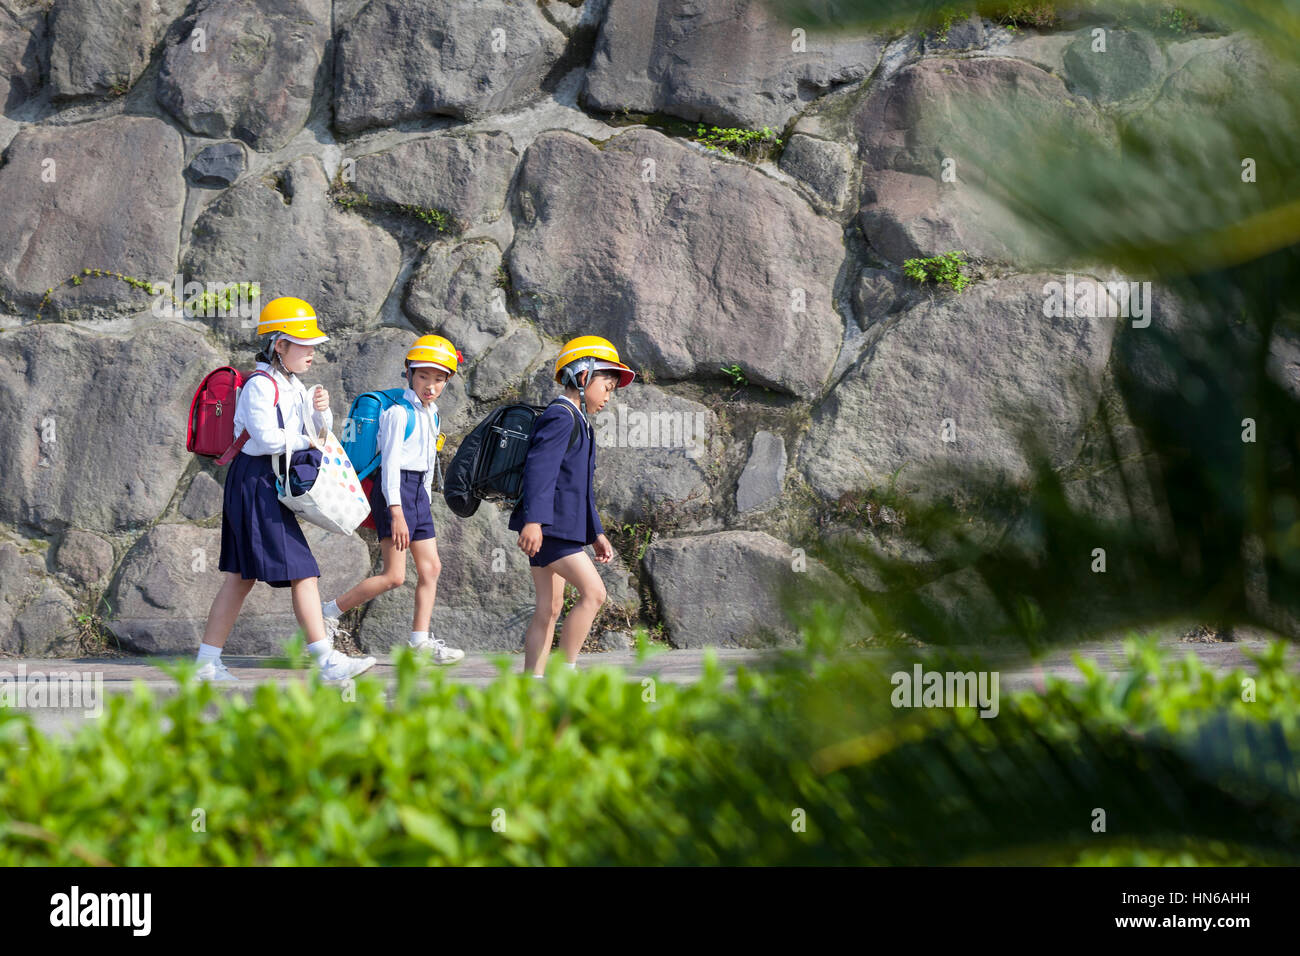 Sakura-jima, Japan - April 23, 2012: Three schoolchildren walk home wearing hard hats to protect against potentially - Stock Image